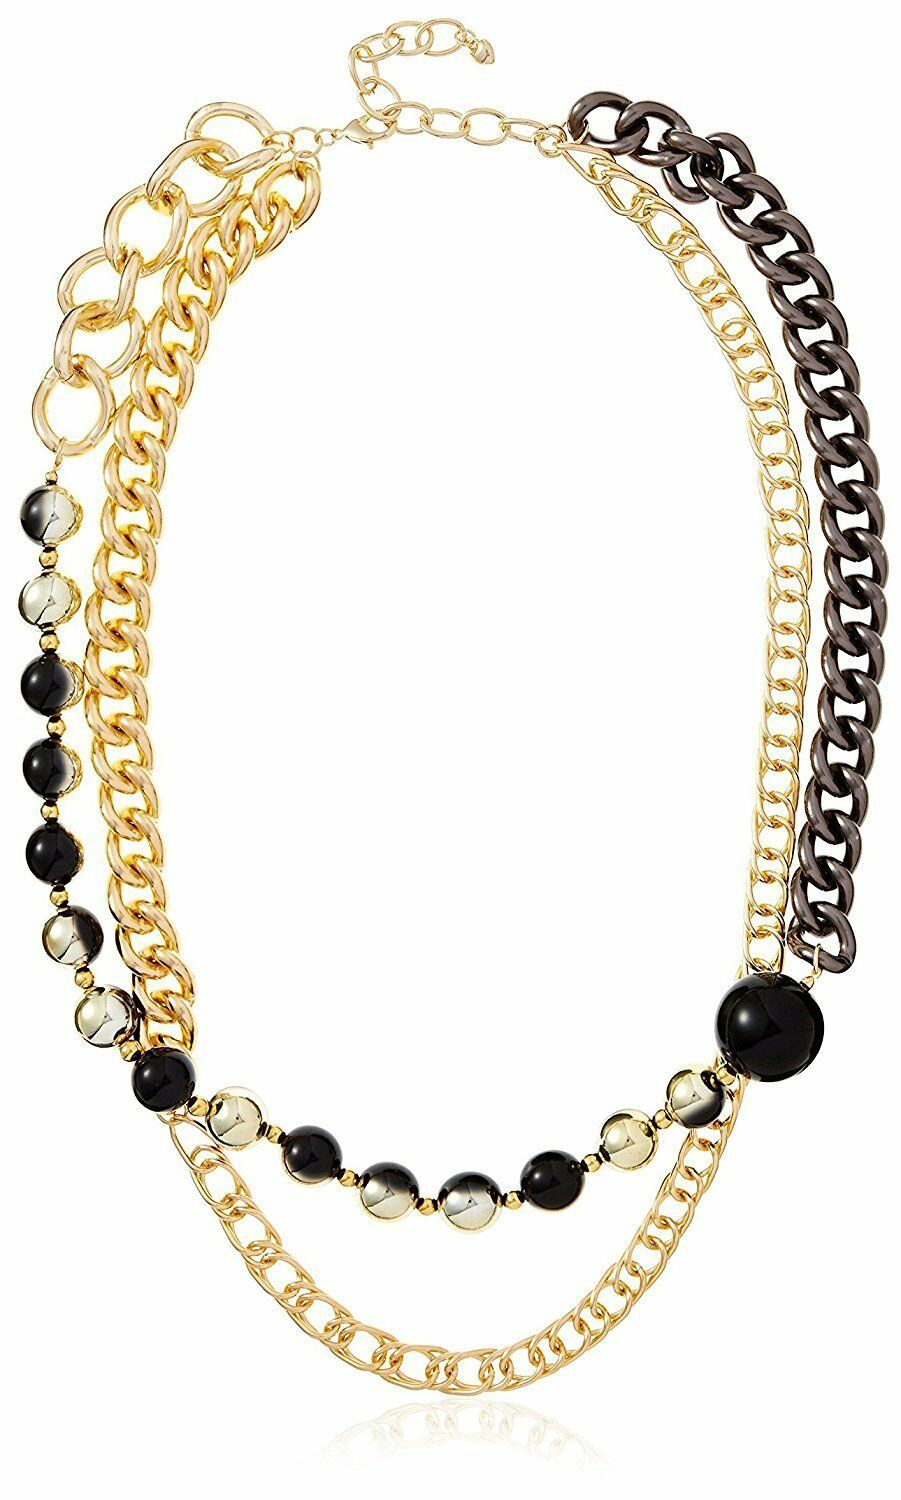 Daniela Swaebe 18K Gold Black Rhodium-Plated Ball Chain Ombre Statement Necklace